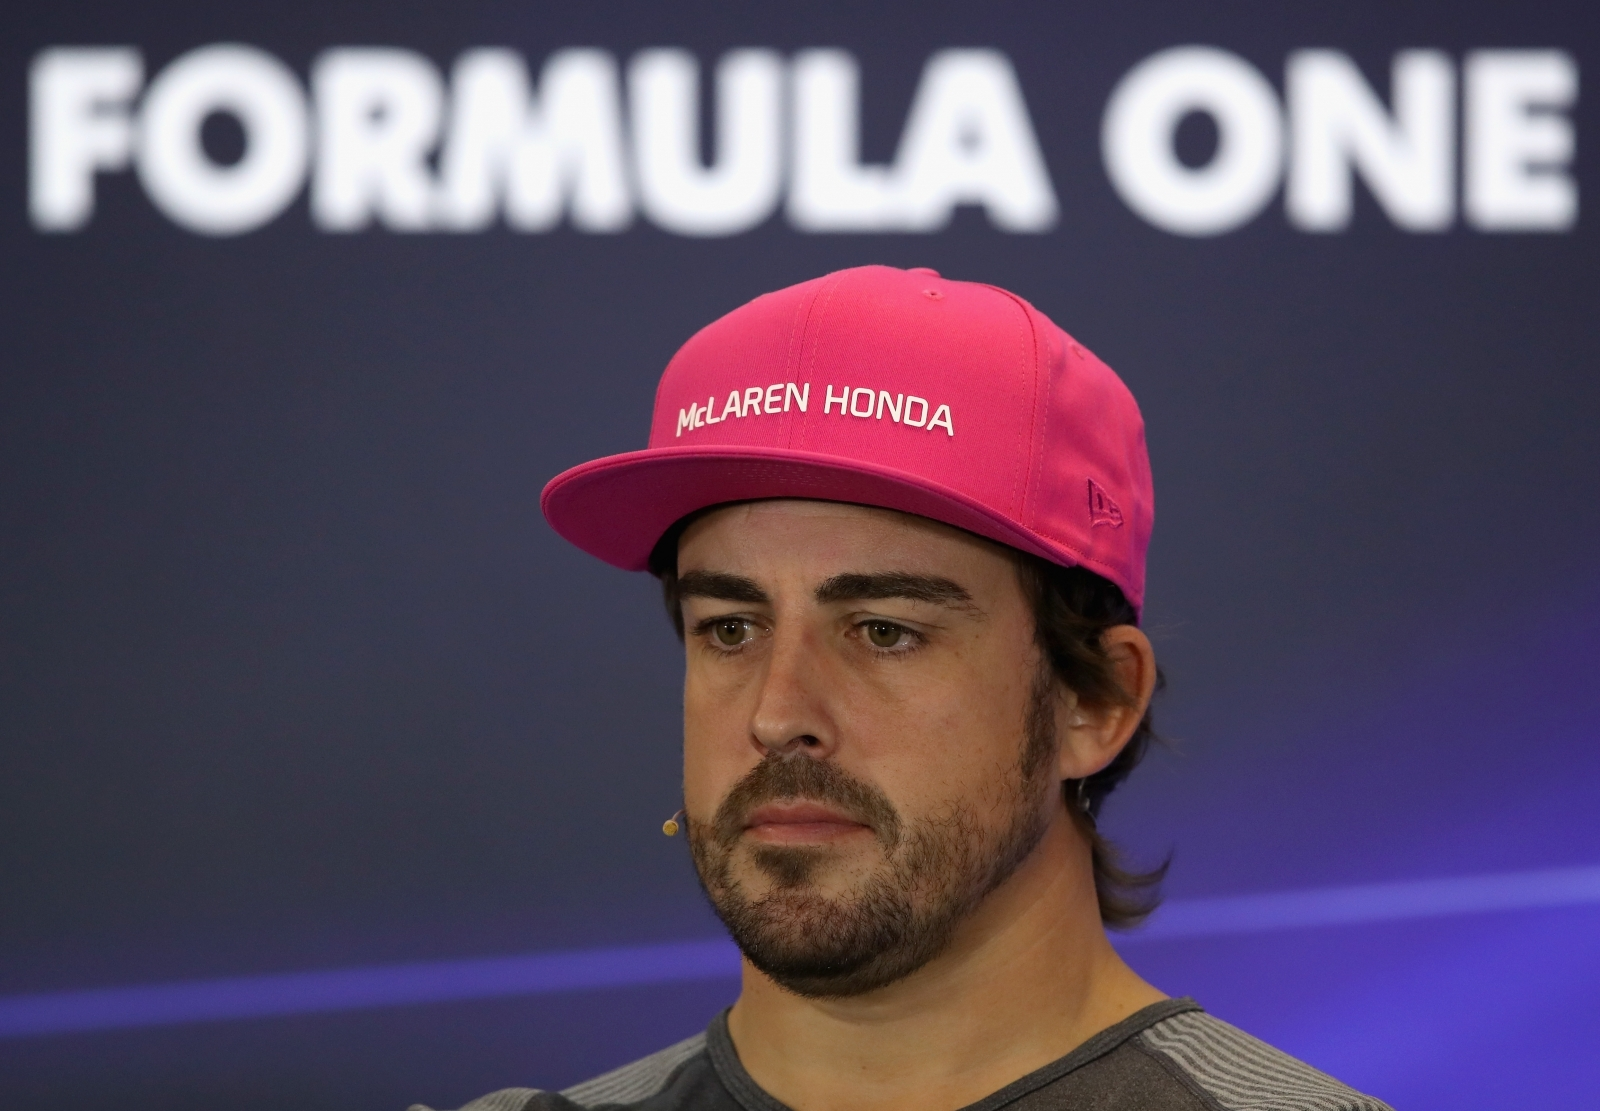 Alonso to race on with McLaren in 2018